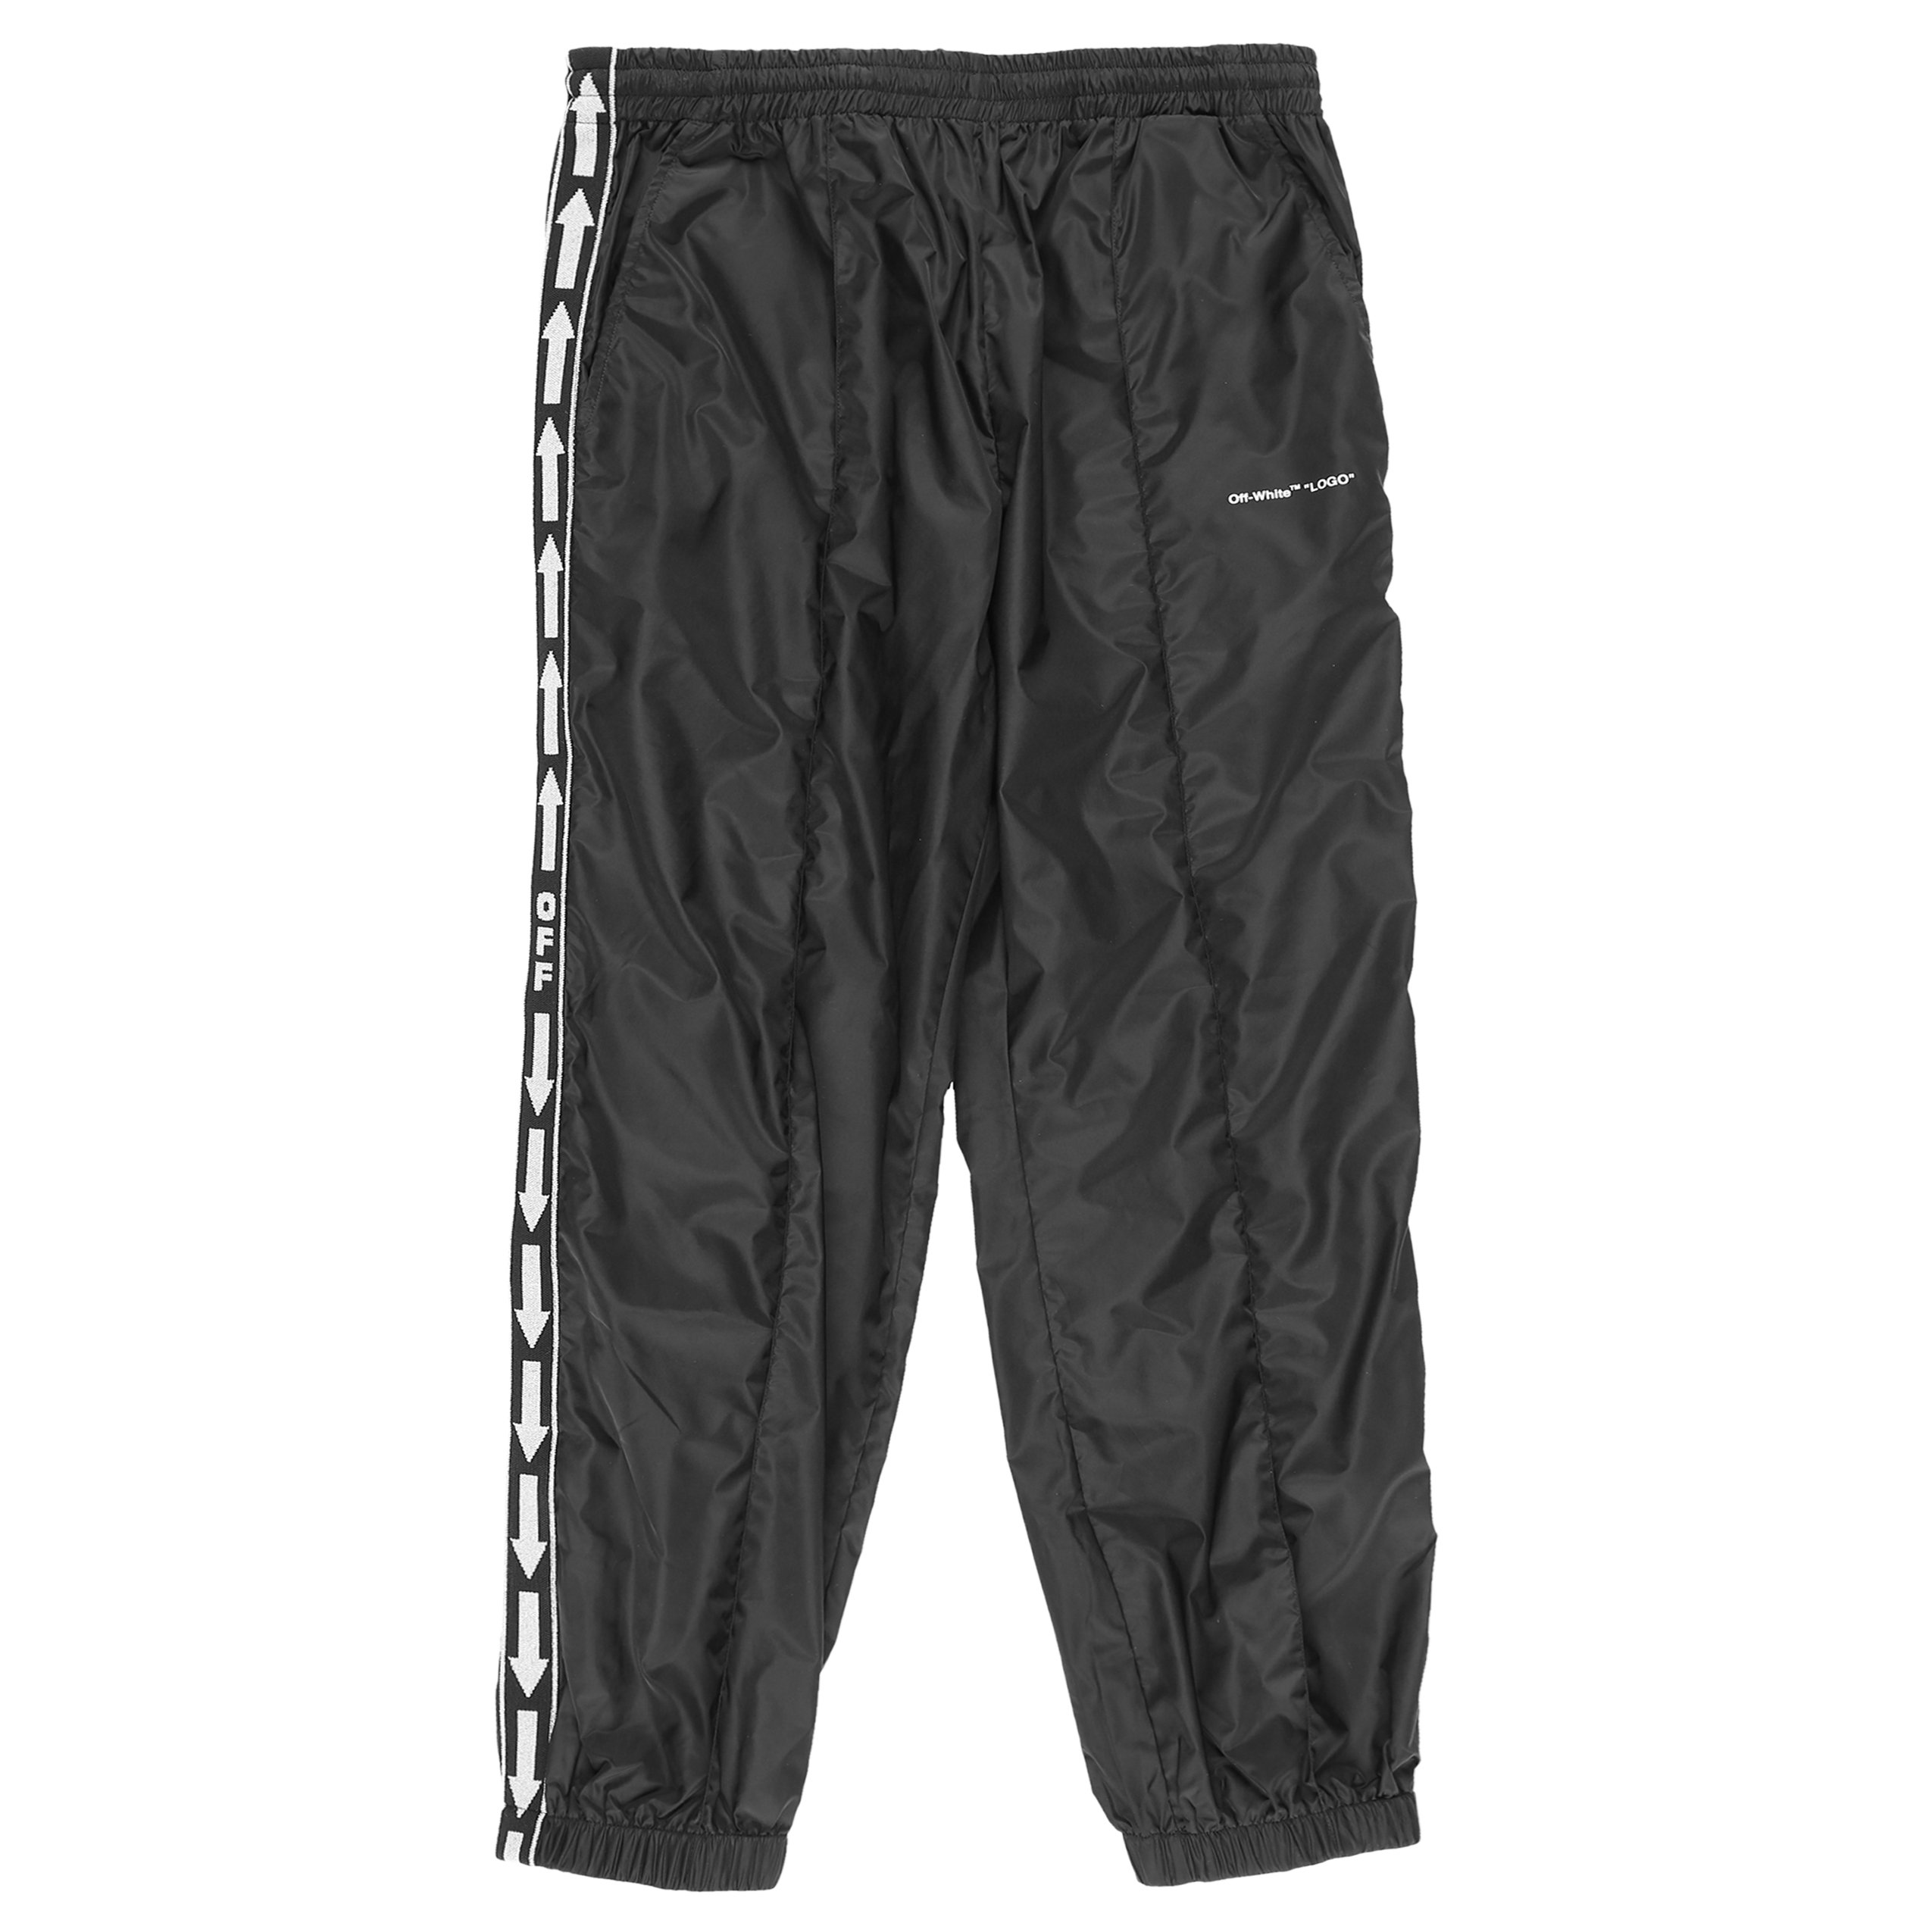 7f80e9c9 Off-White Light Nylon Jogging Pants - BLACK | Garmentory